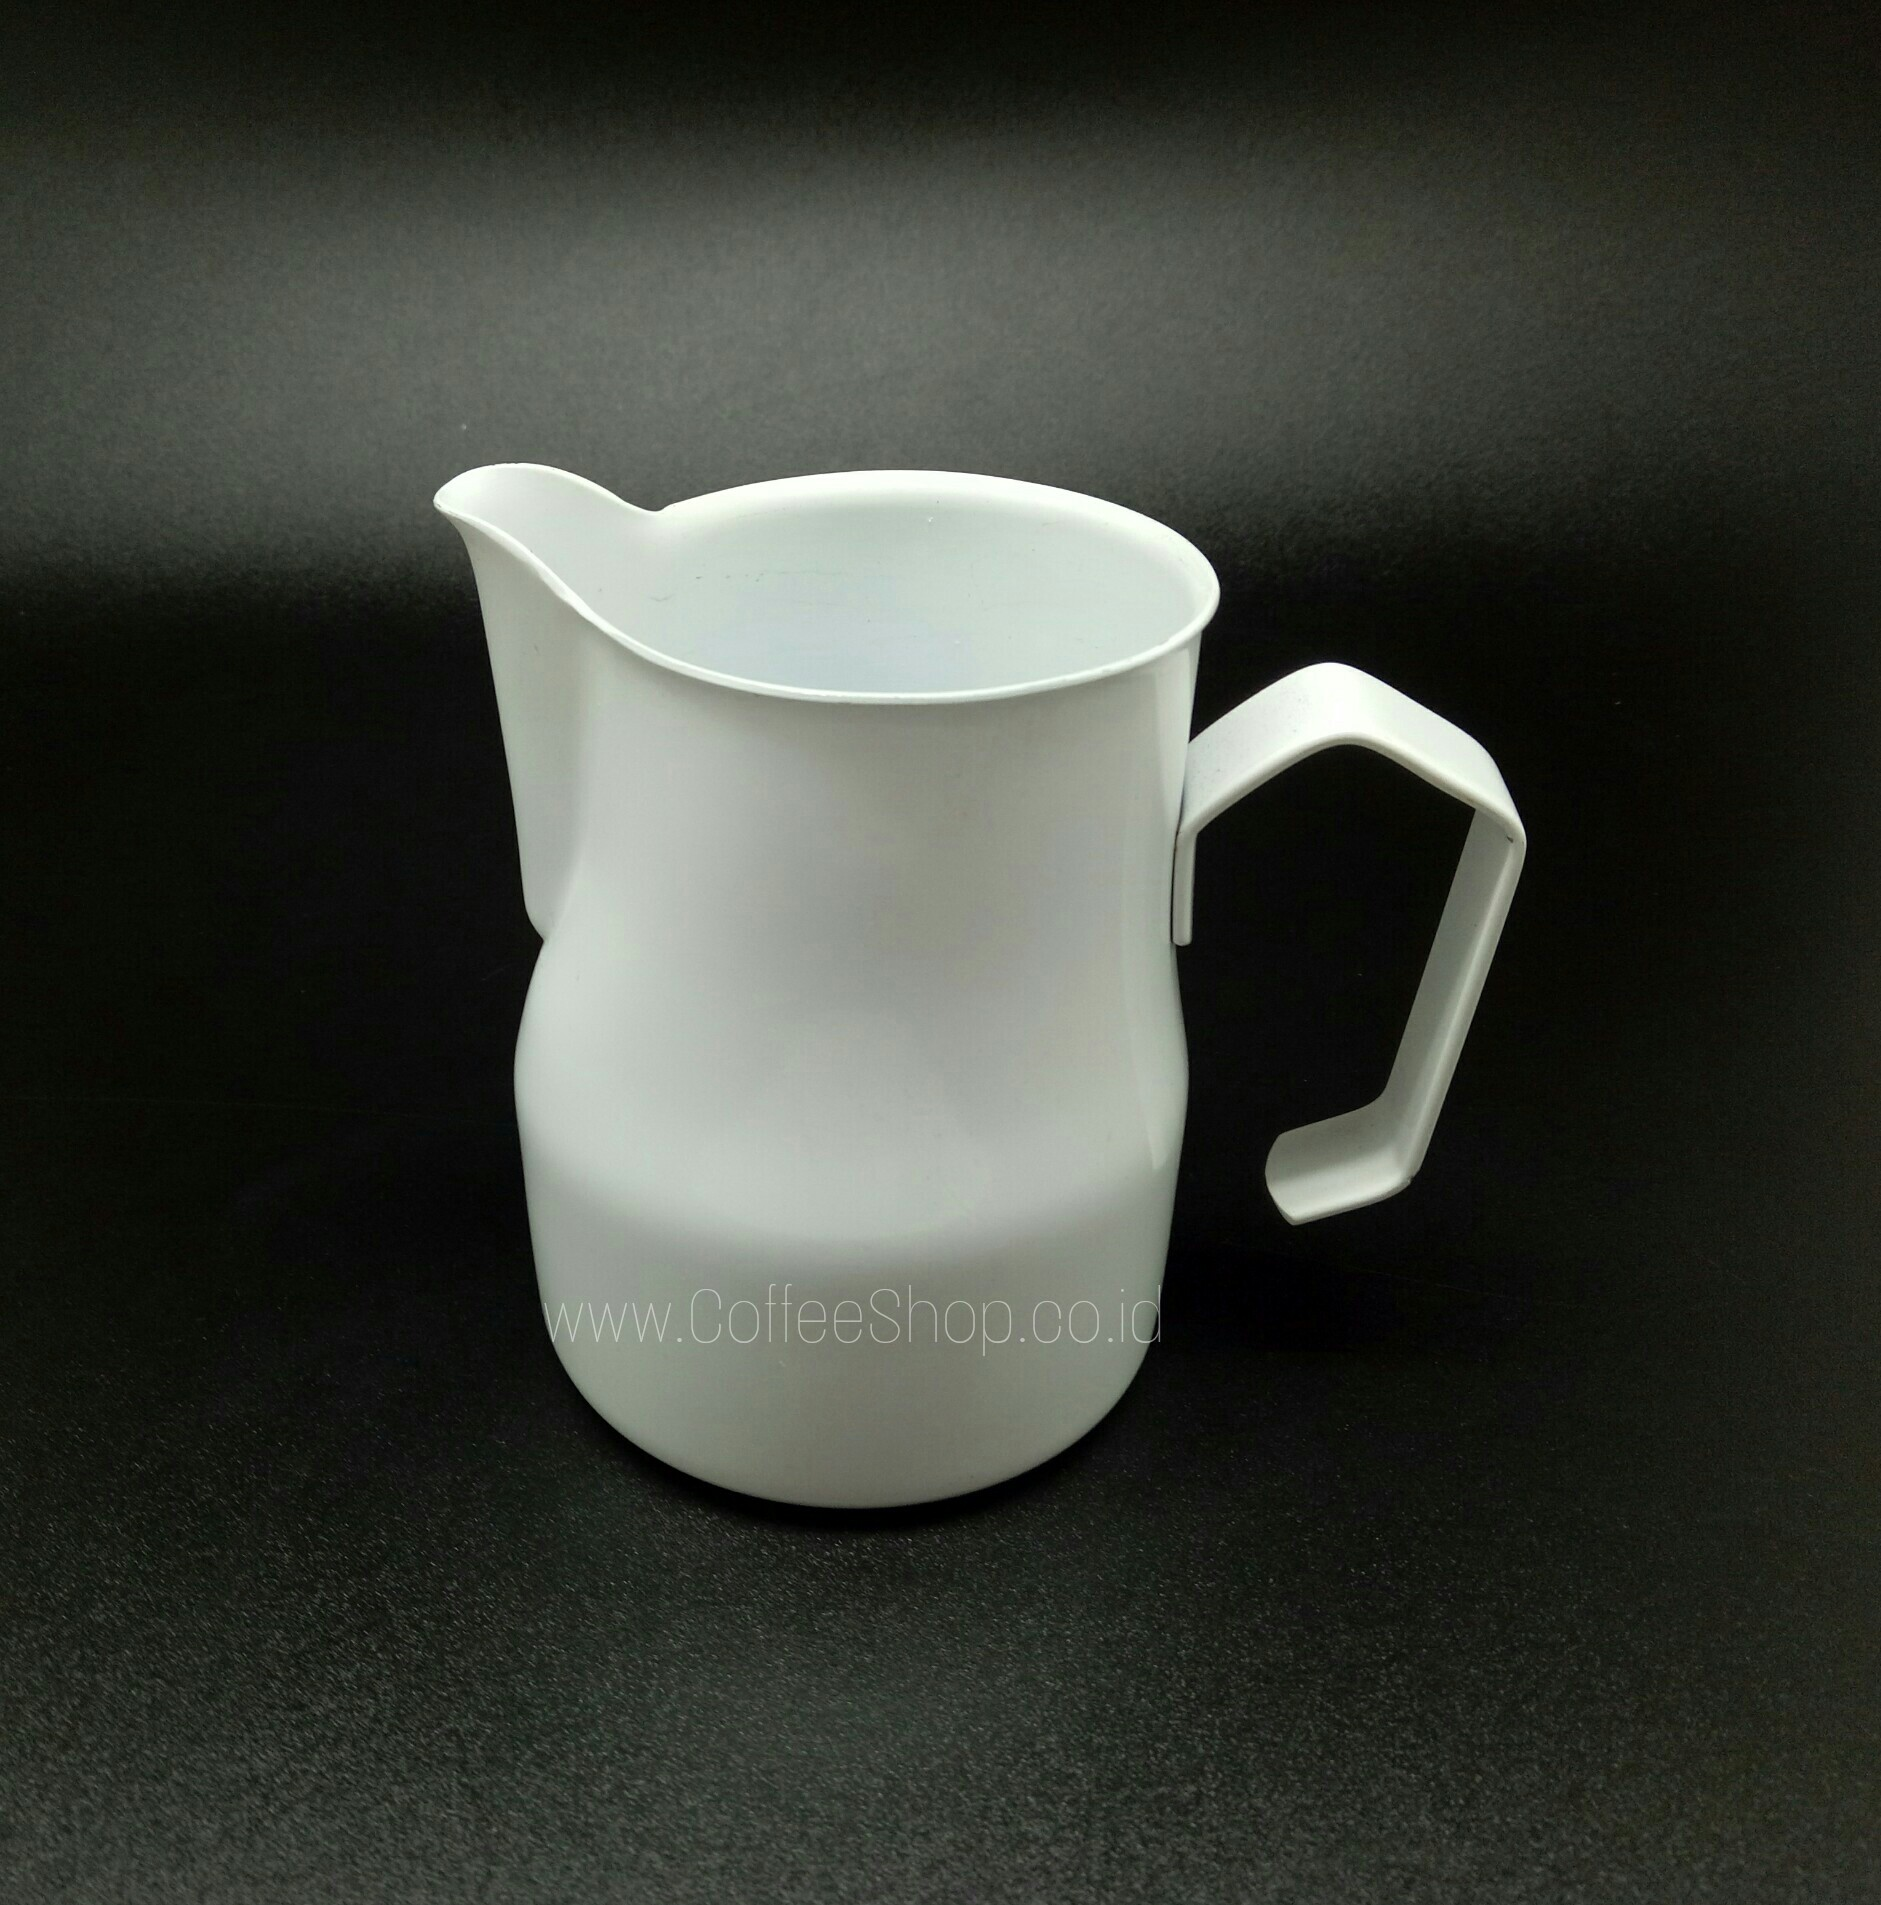 milk jug 300ml